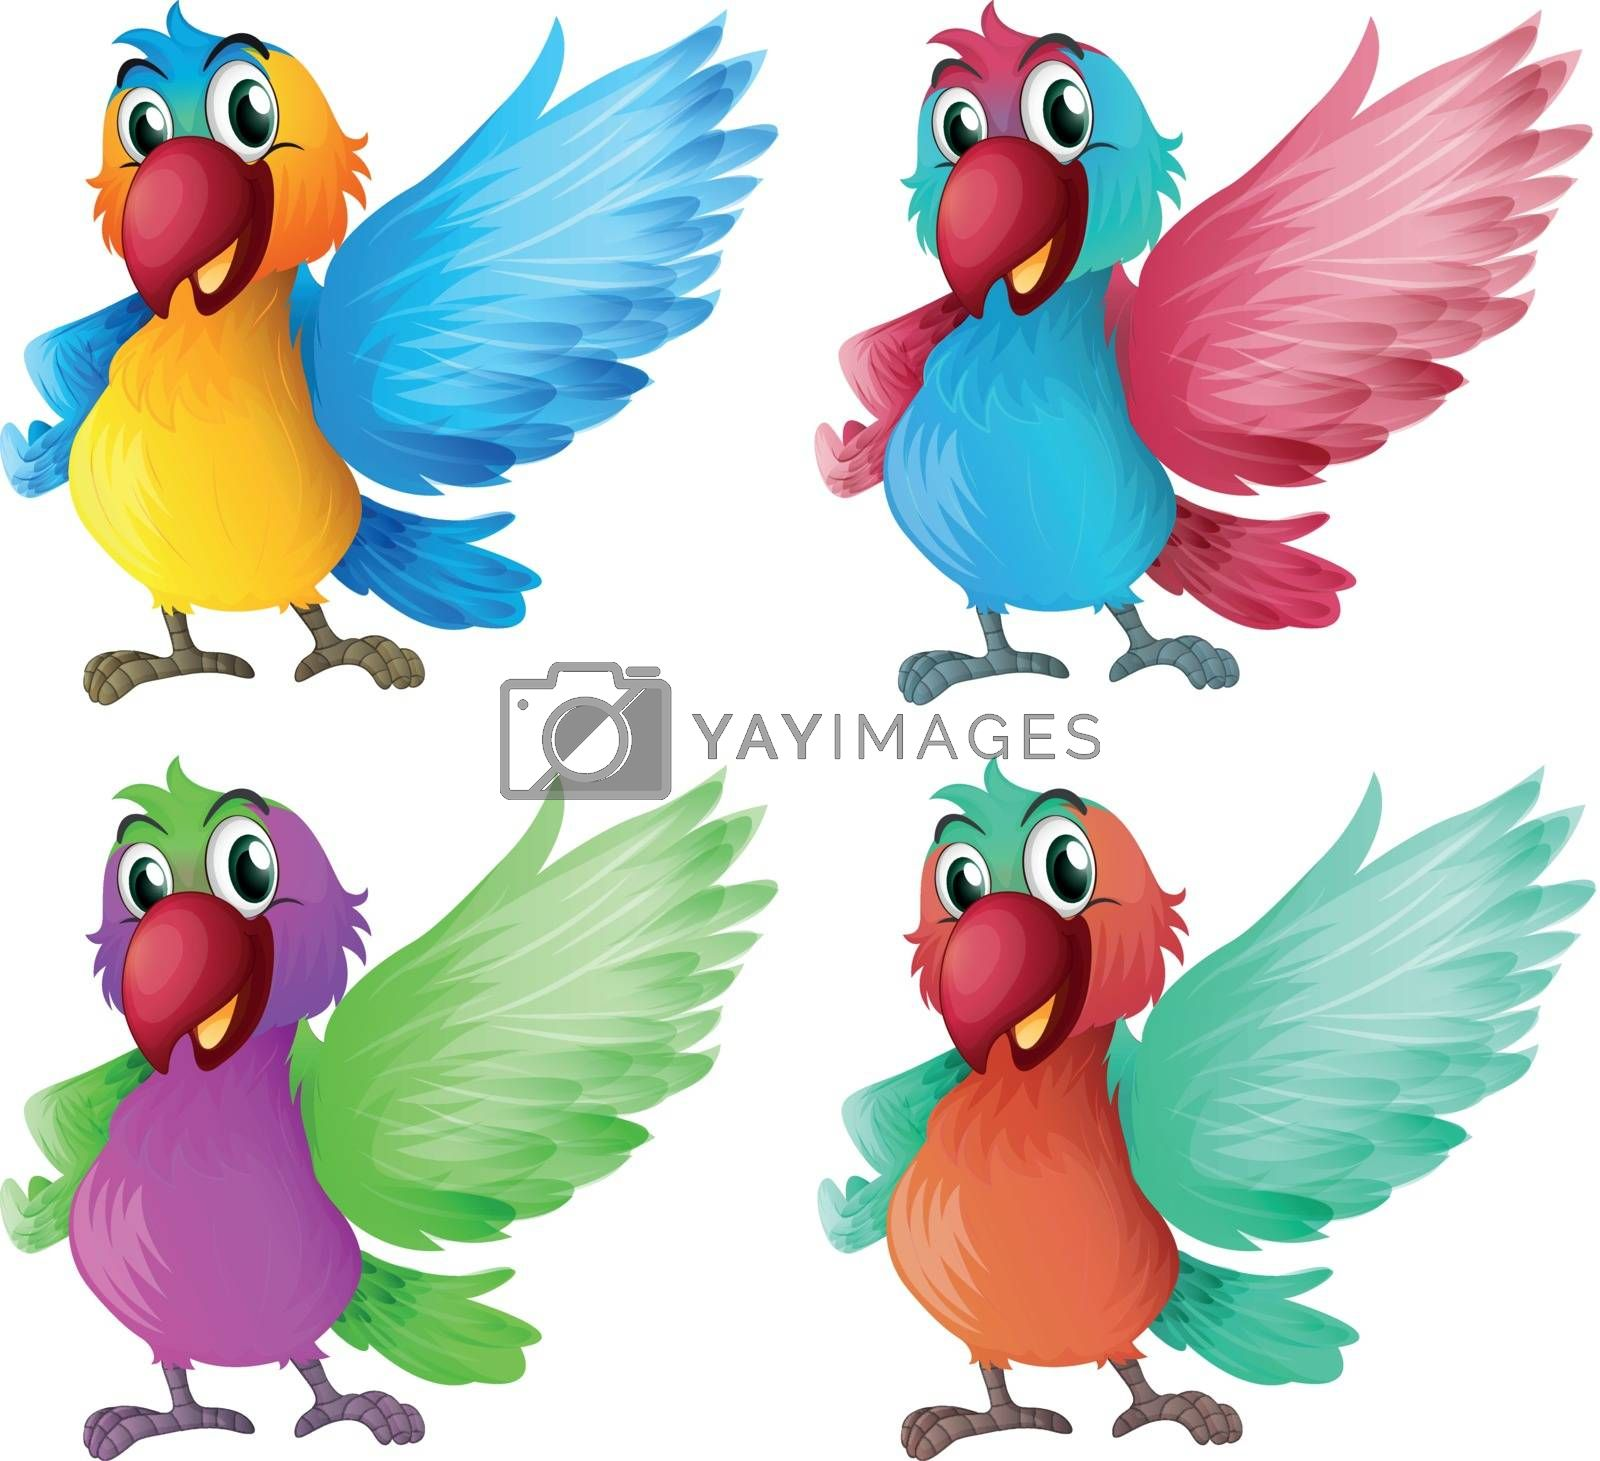 Illustration of the four adorable parrots on a white background